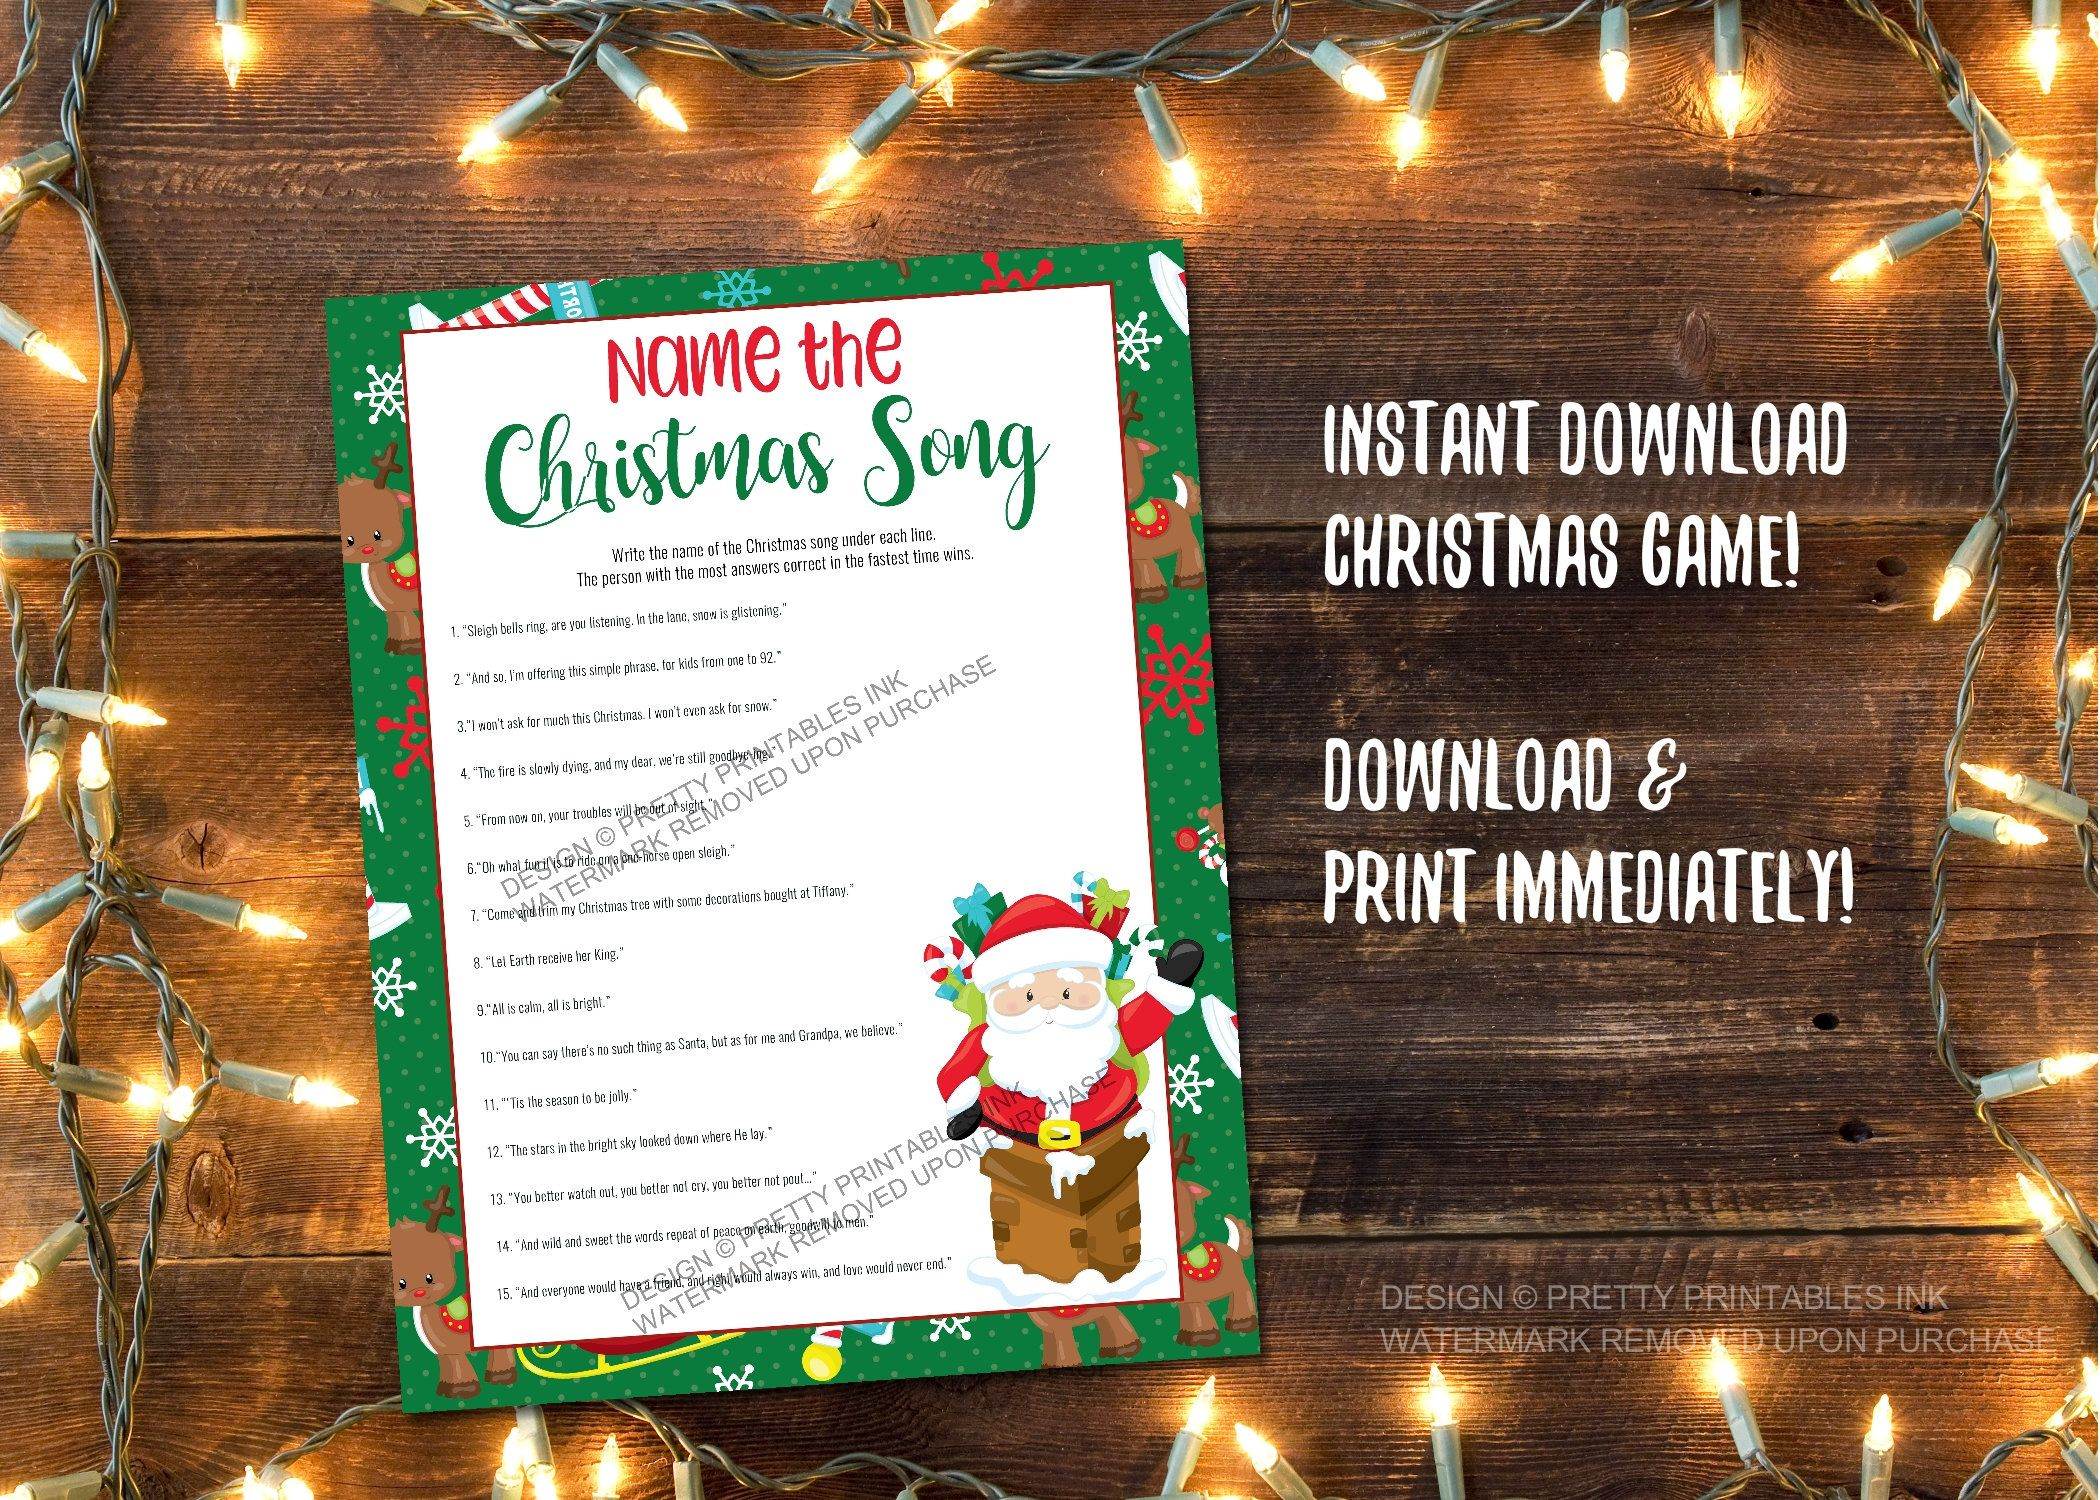 Instant Download Christmas Song Game Printable Christmas Carol Quiz Christmas Party Game Name That Christmas Song Printable Christmas Games Christmas Song Games Christmas Carol Quiz